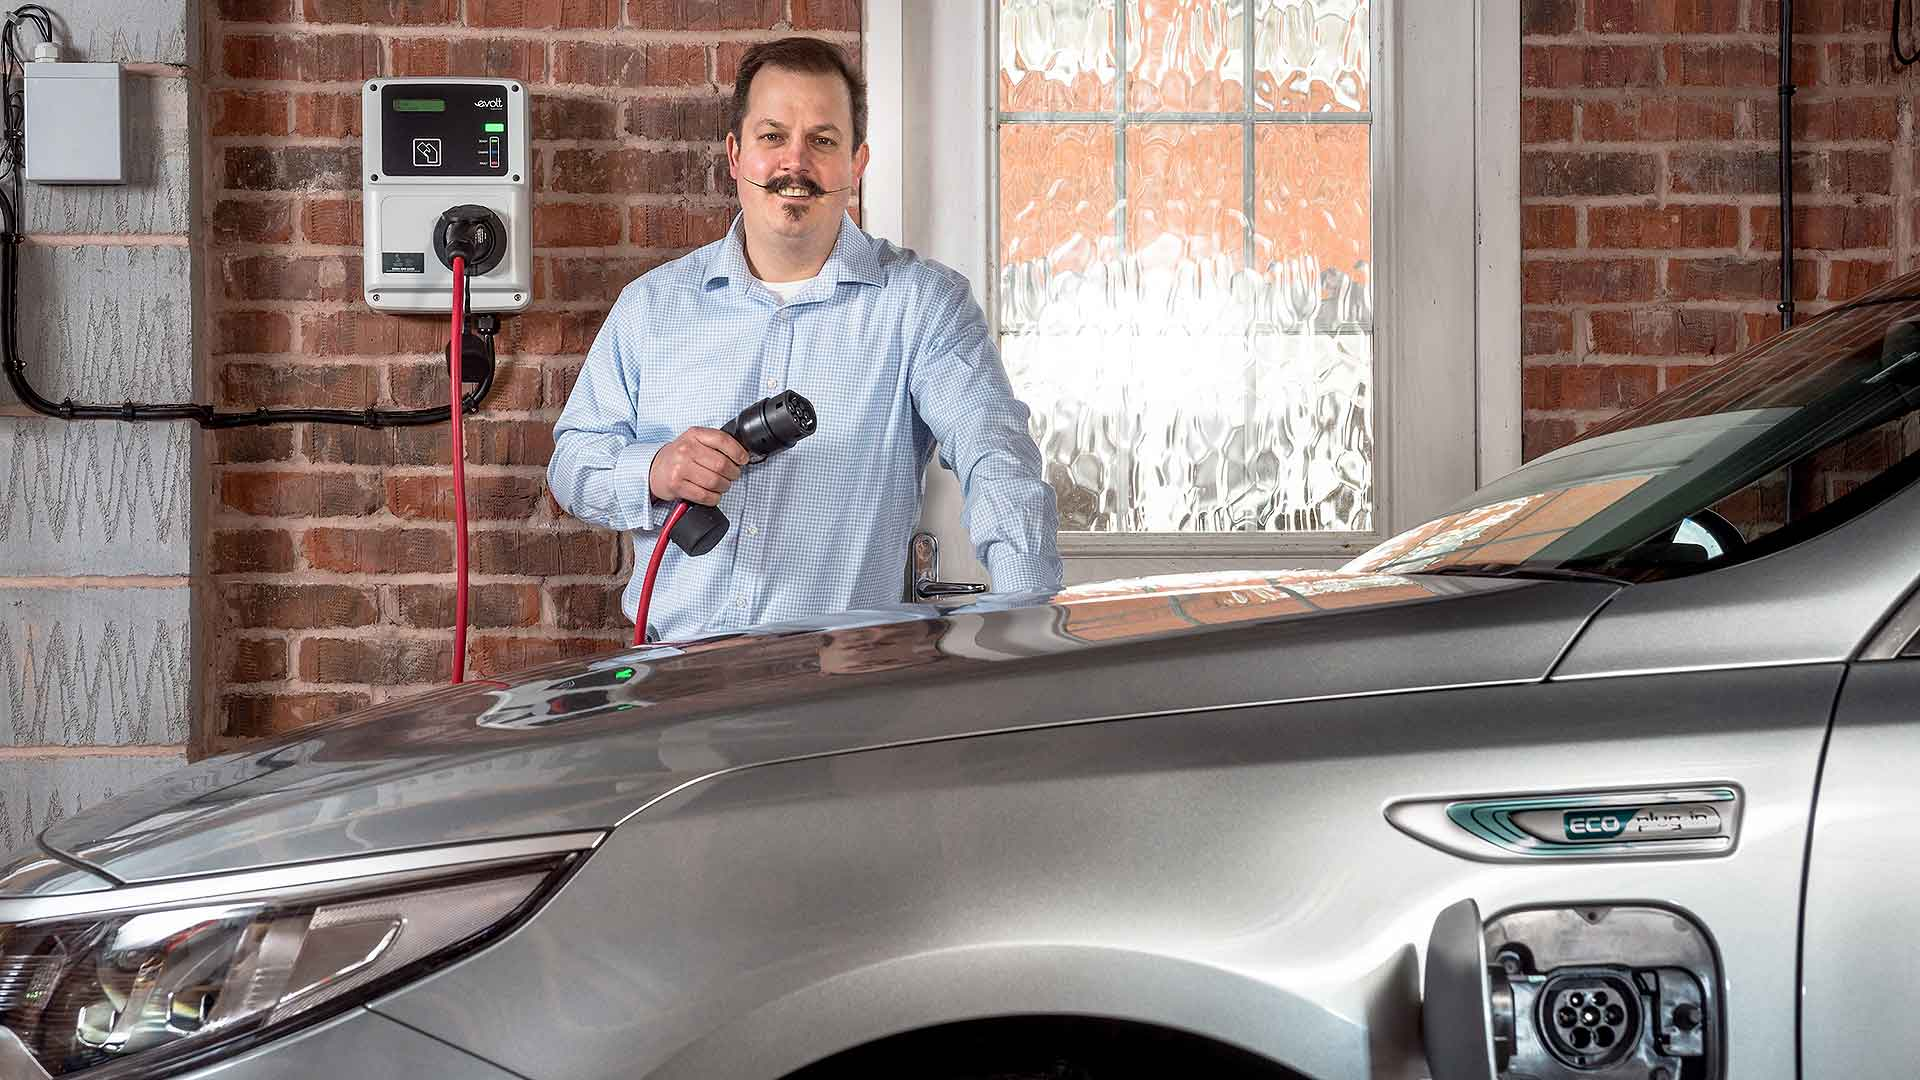 Electric car owner unplugging their vehicle